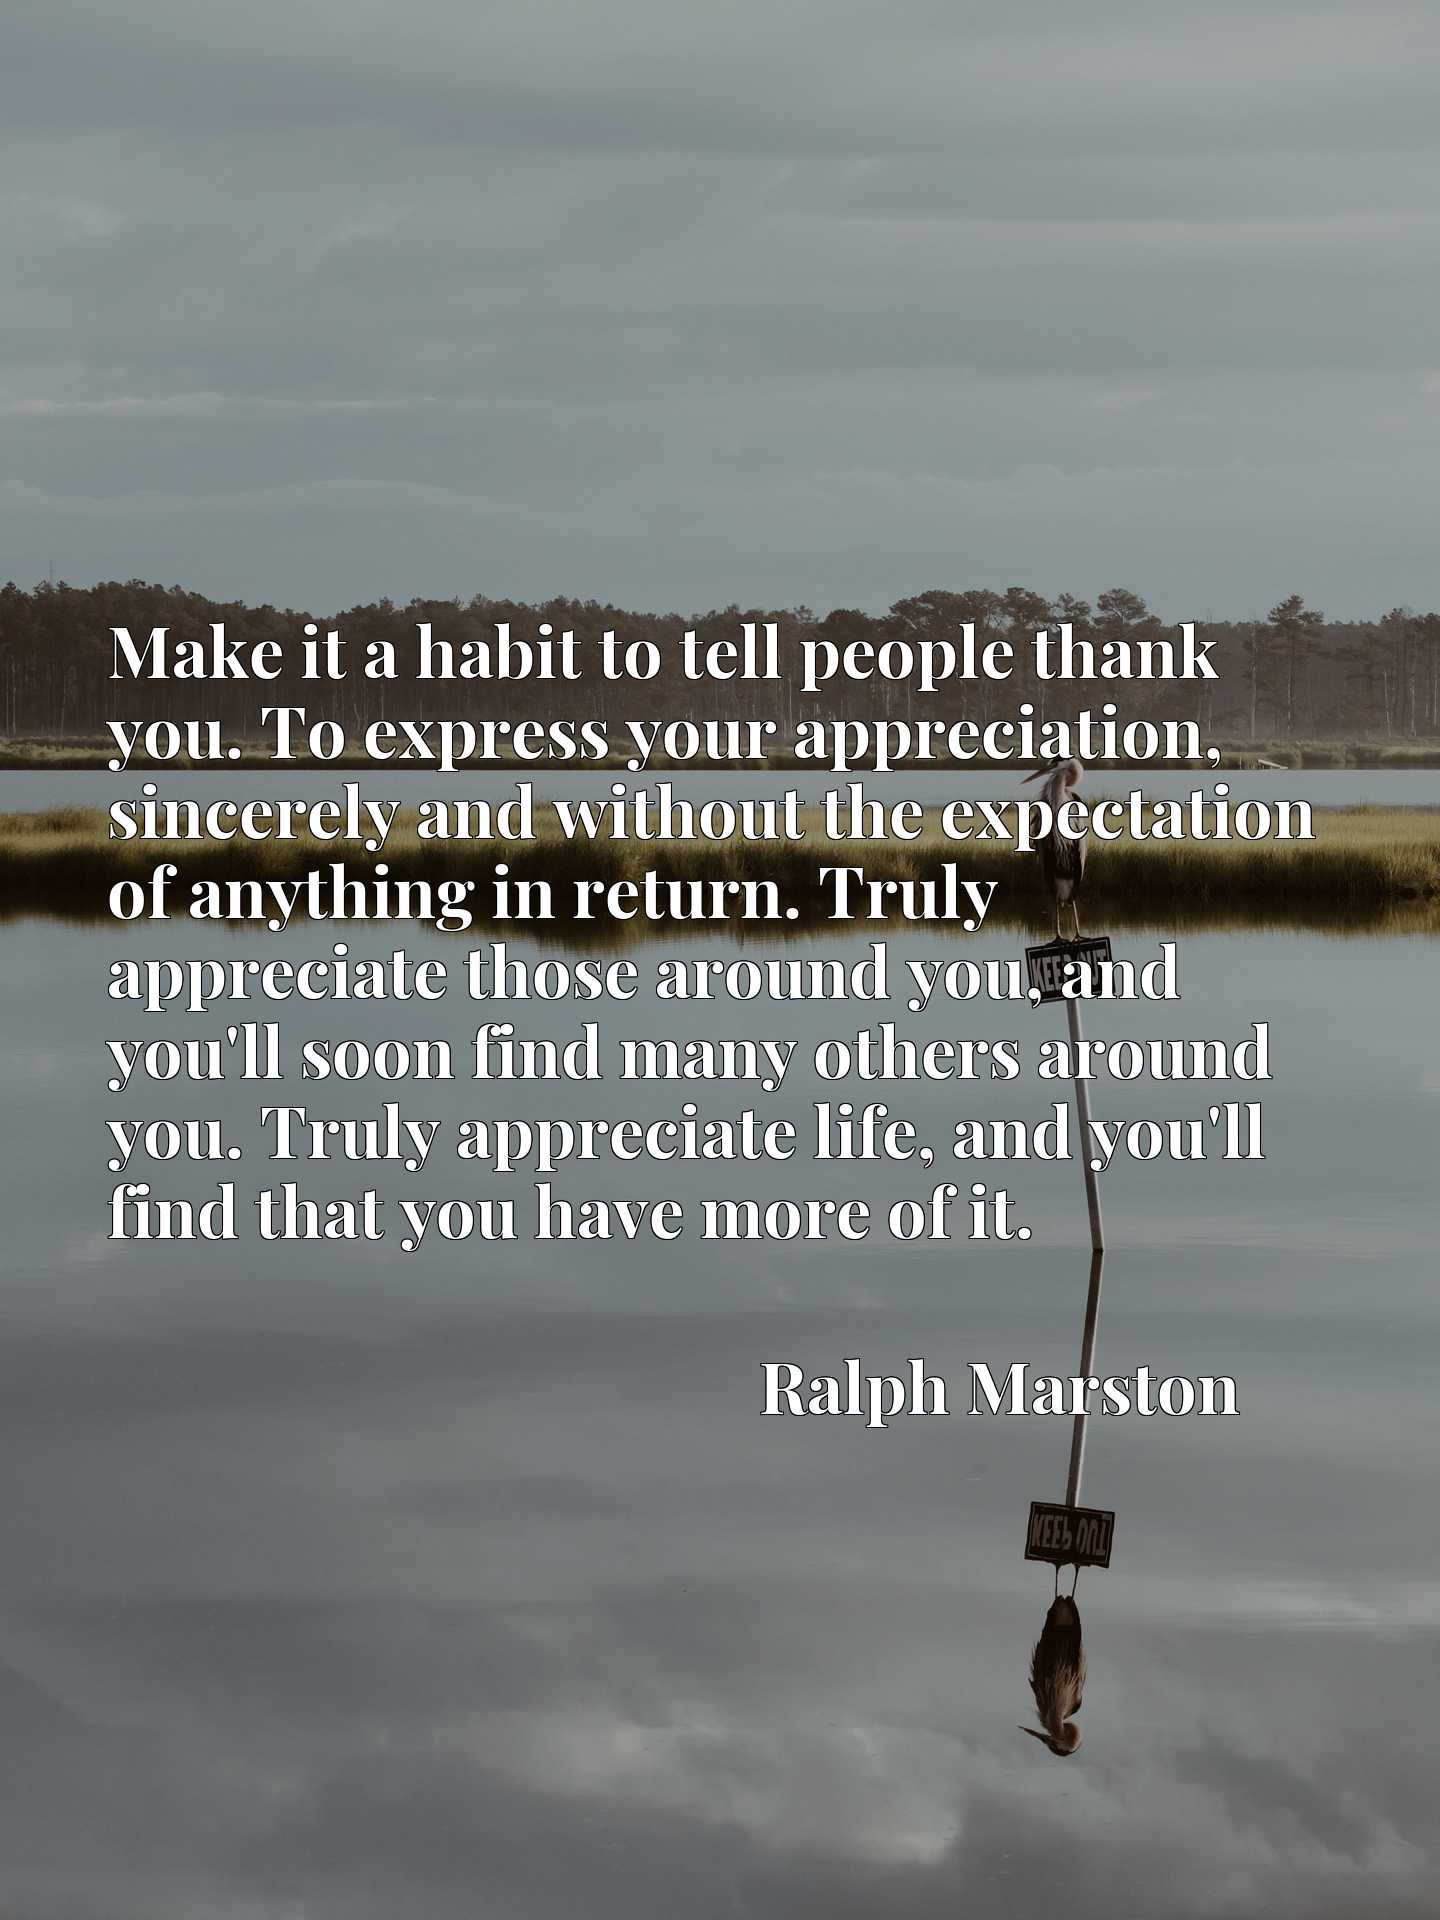 Make it a habit to tell people thank you. To express your appreciation, sincerely and without the expectation of anything in return. Truly appreciate those around you, and you'll soon find many others around you. Truly appreciate life, and you'll find that you have more of it.